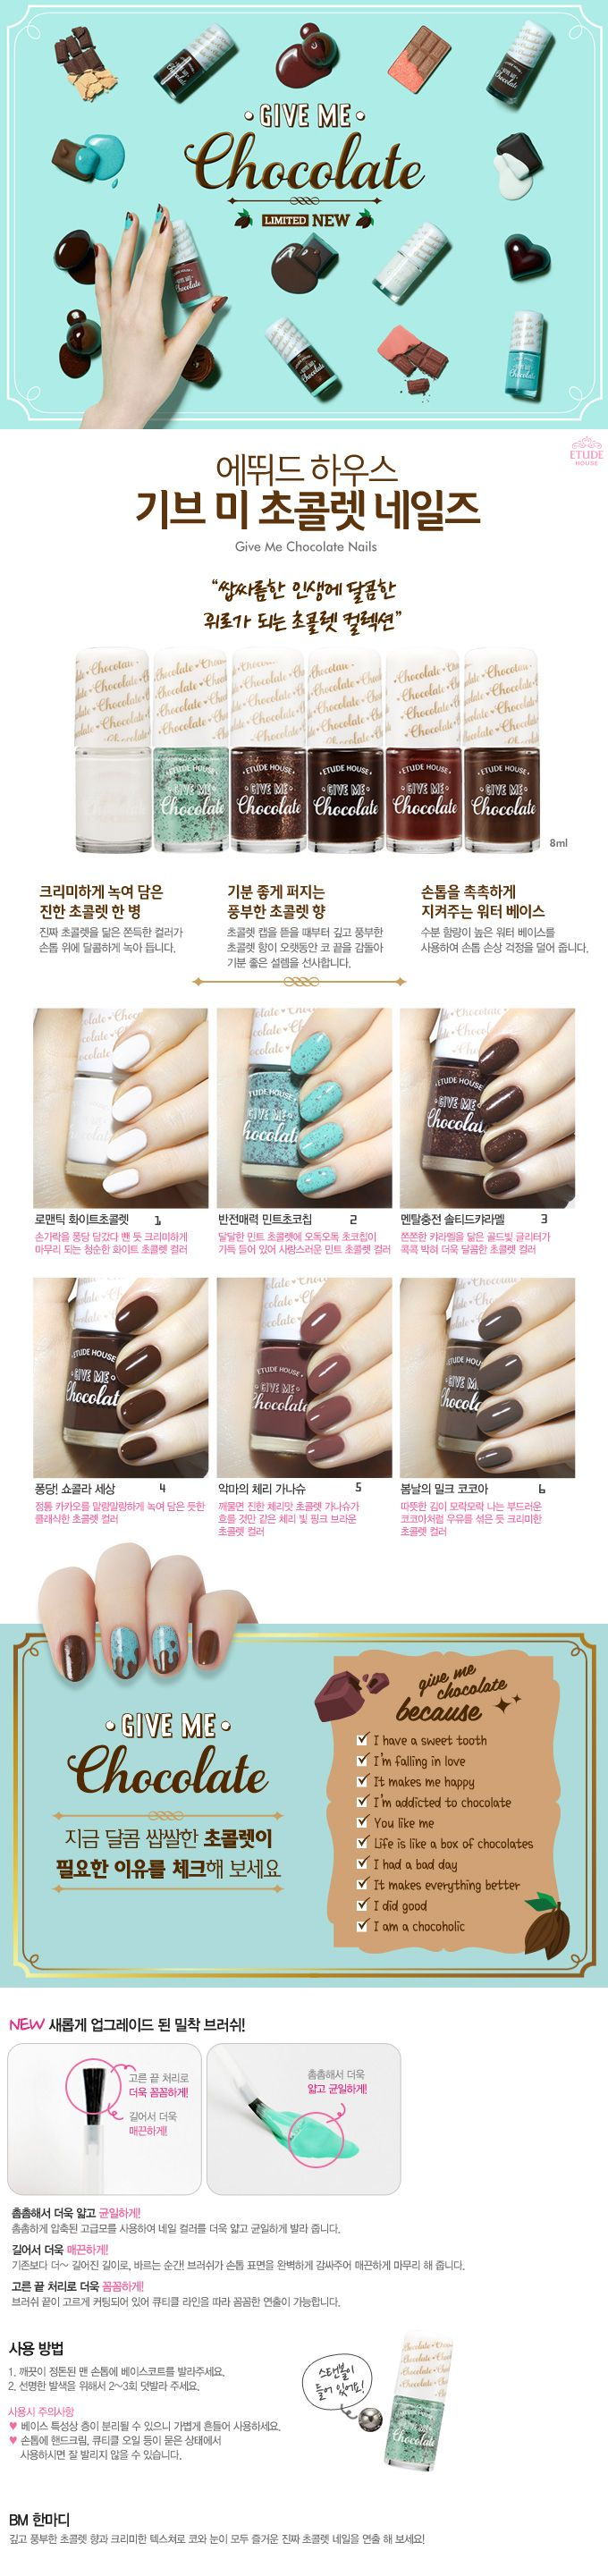 Etude House Give Me Chocolate Nails   The Cutest Makeup